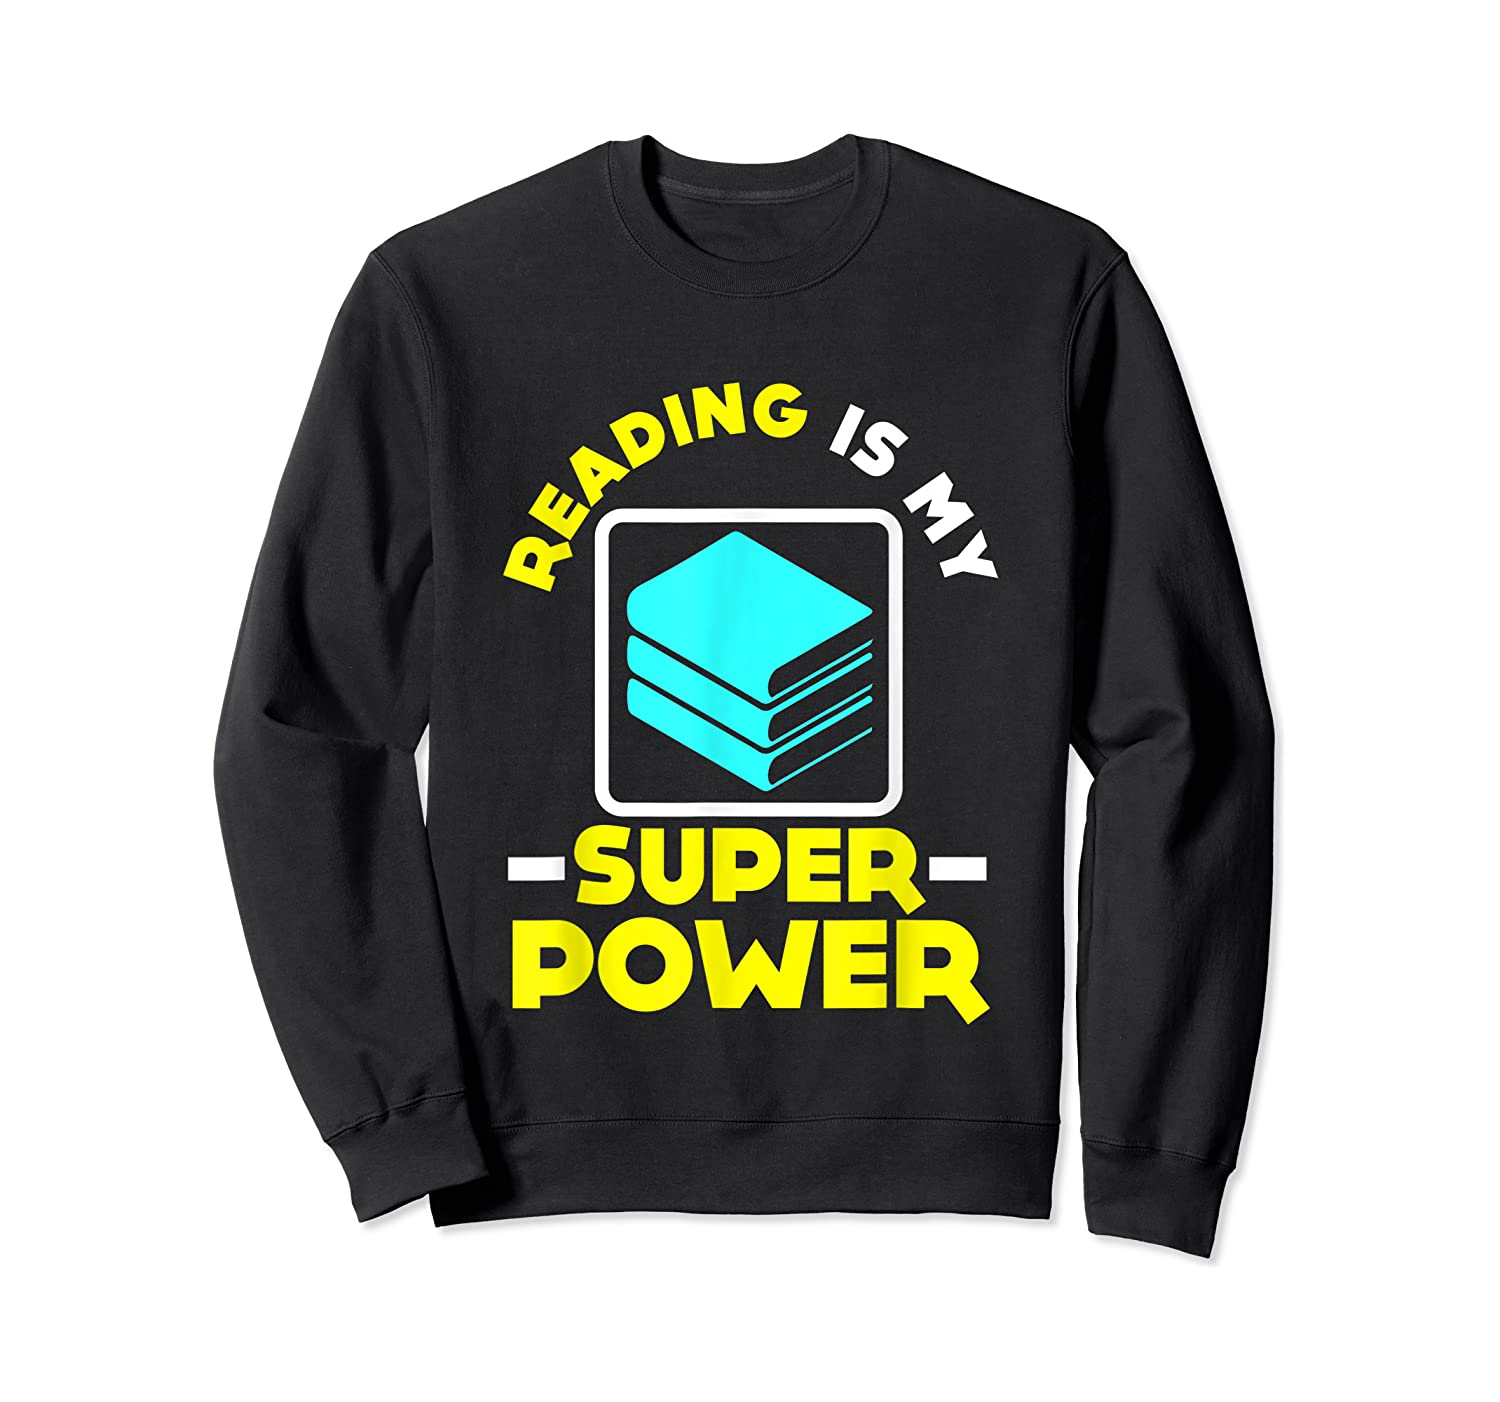 My Superpower Book Lovers Gift Shirts Crewneck Sweater